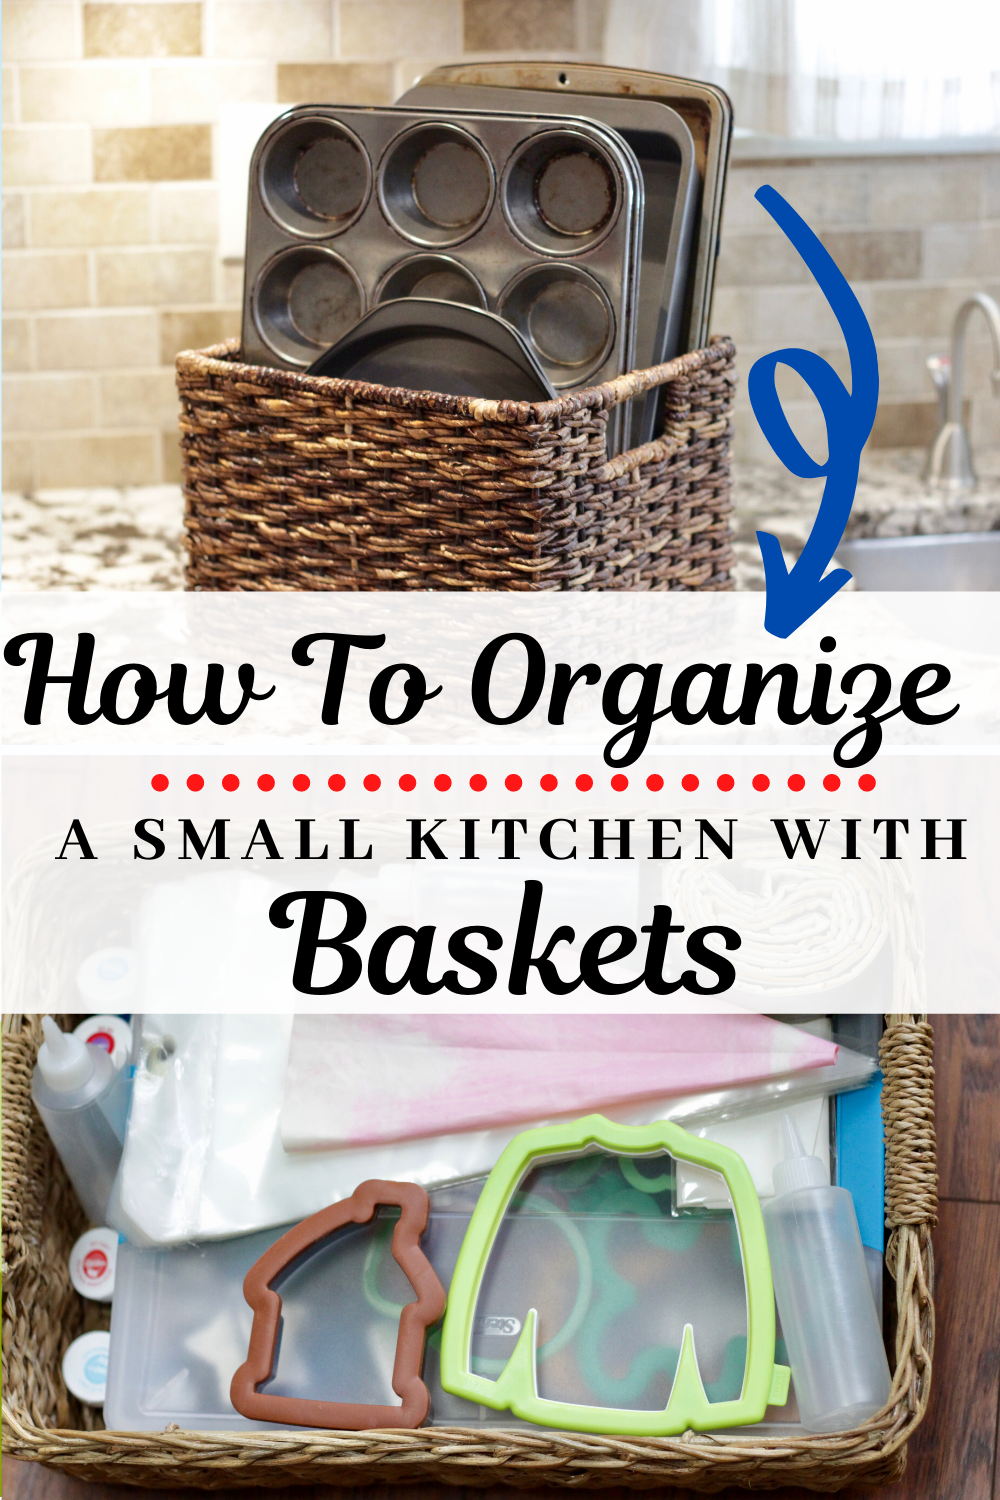 How To Organize Your Small Kitchen With Baskets